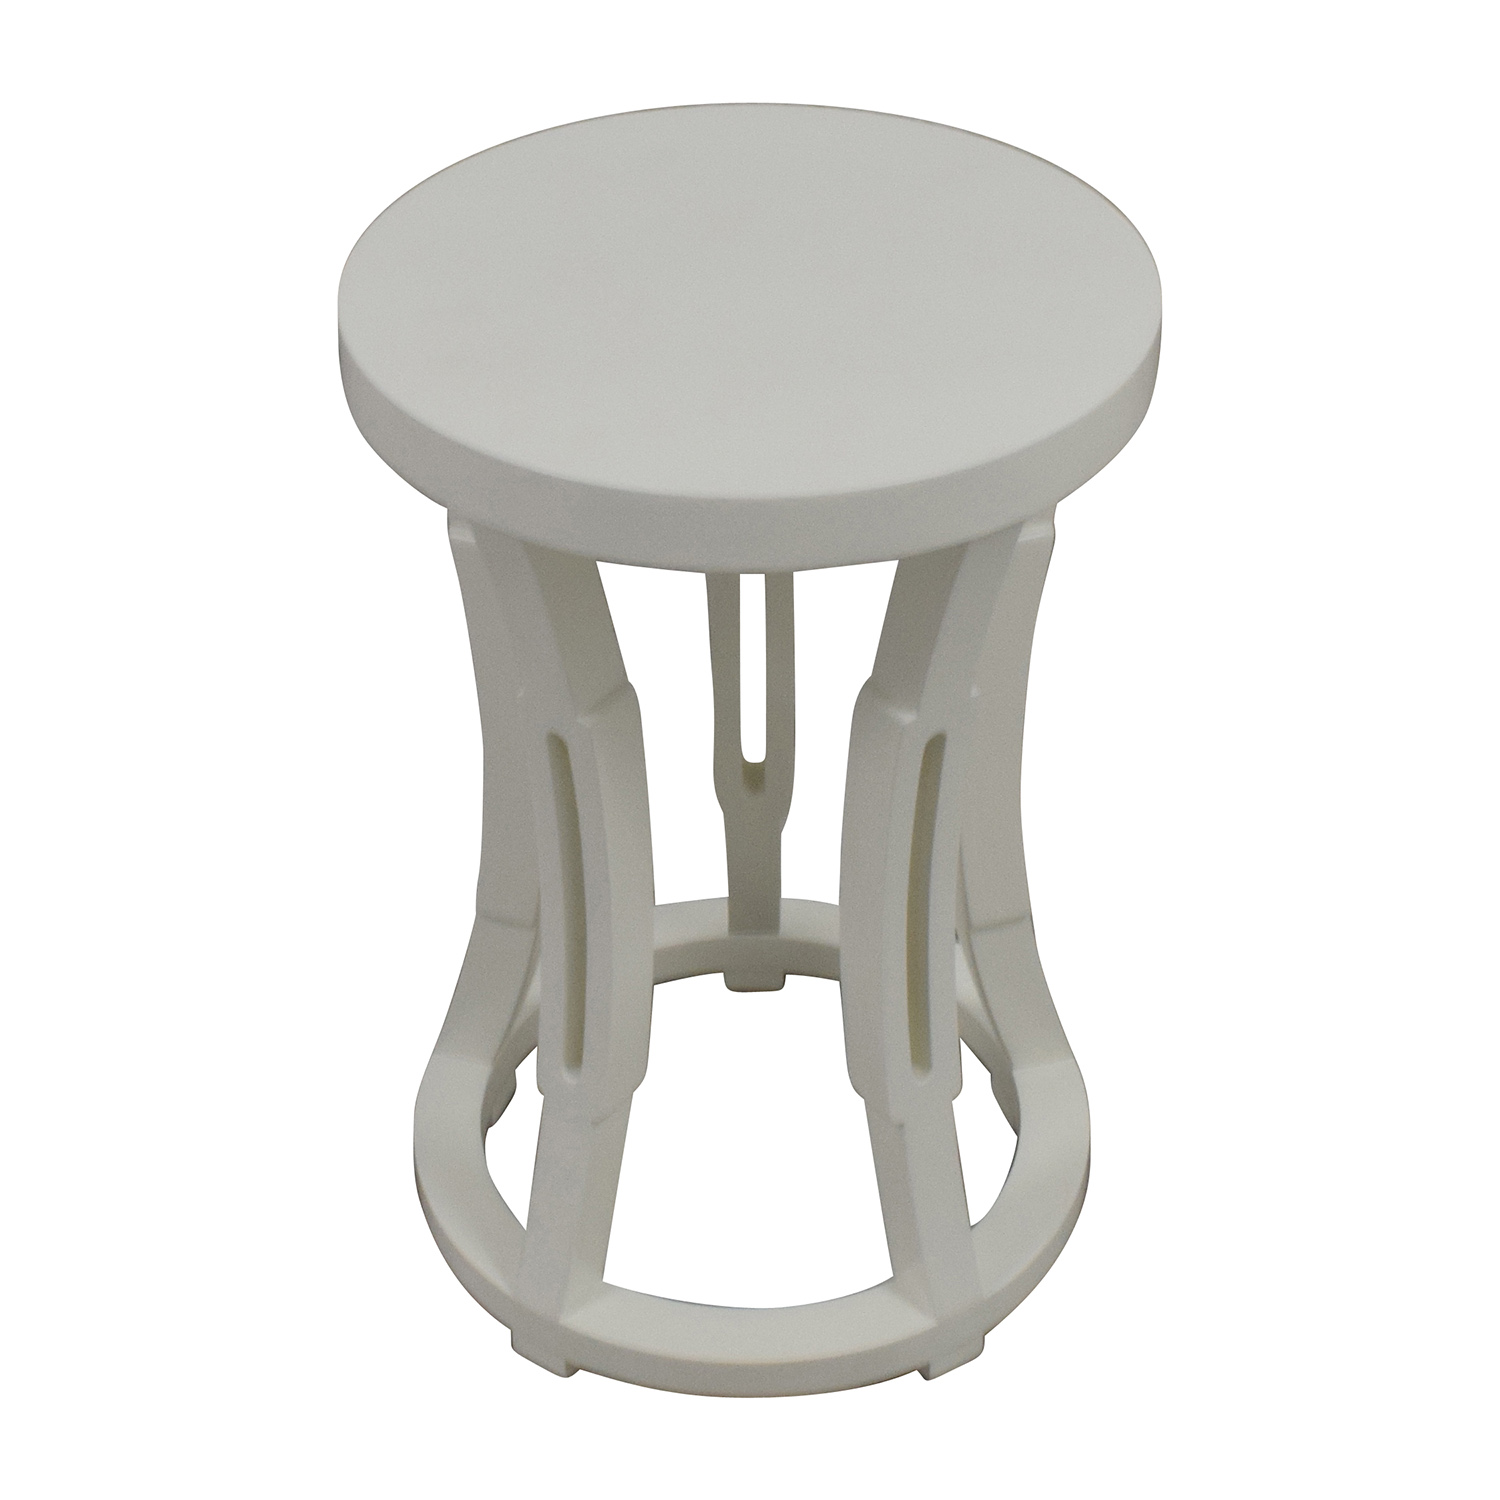 Bungalow 5 Bungalow 5 Hour Glass Stool Side Table or Stool used